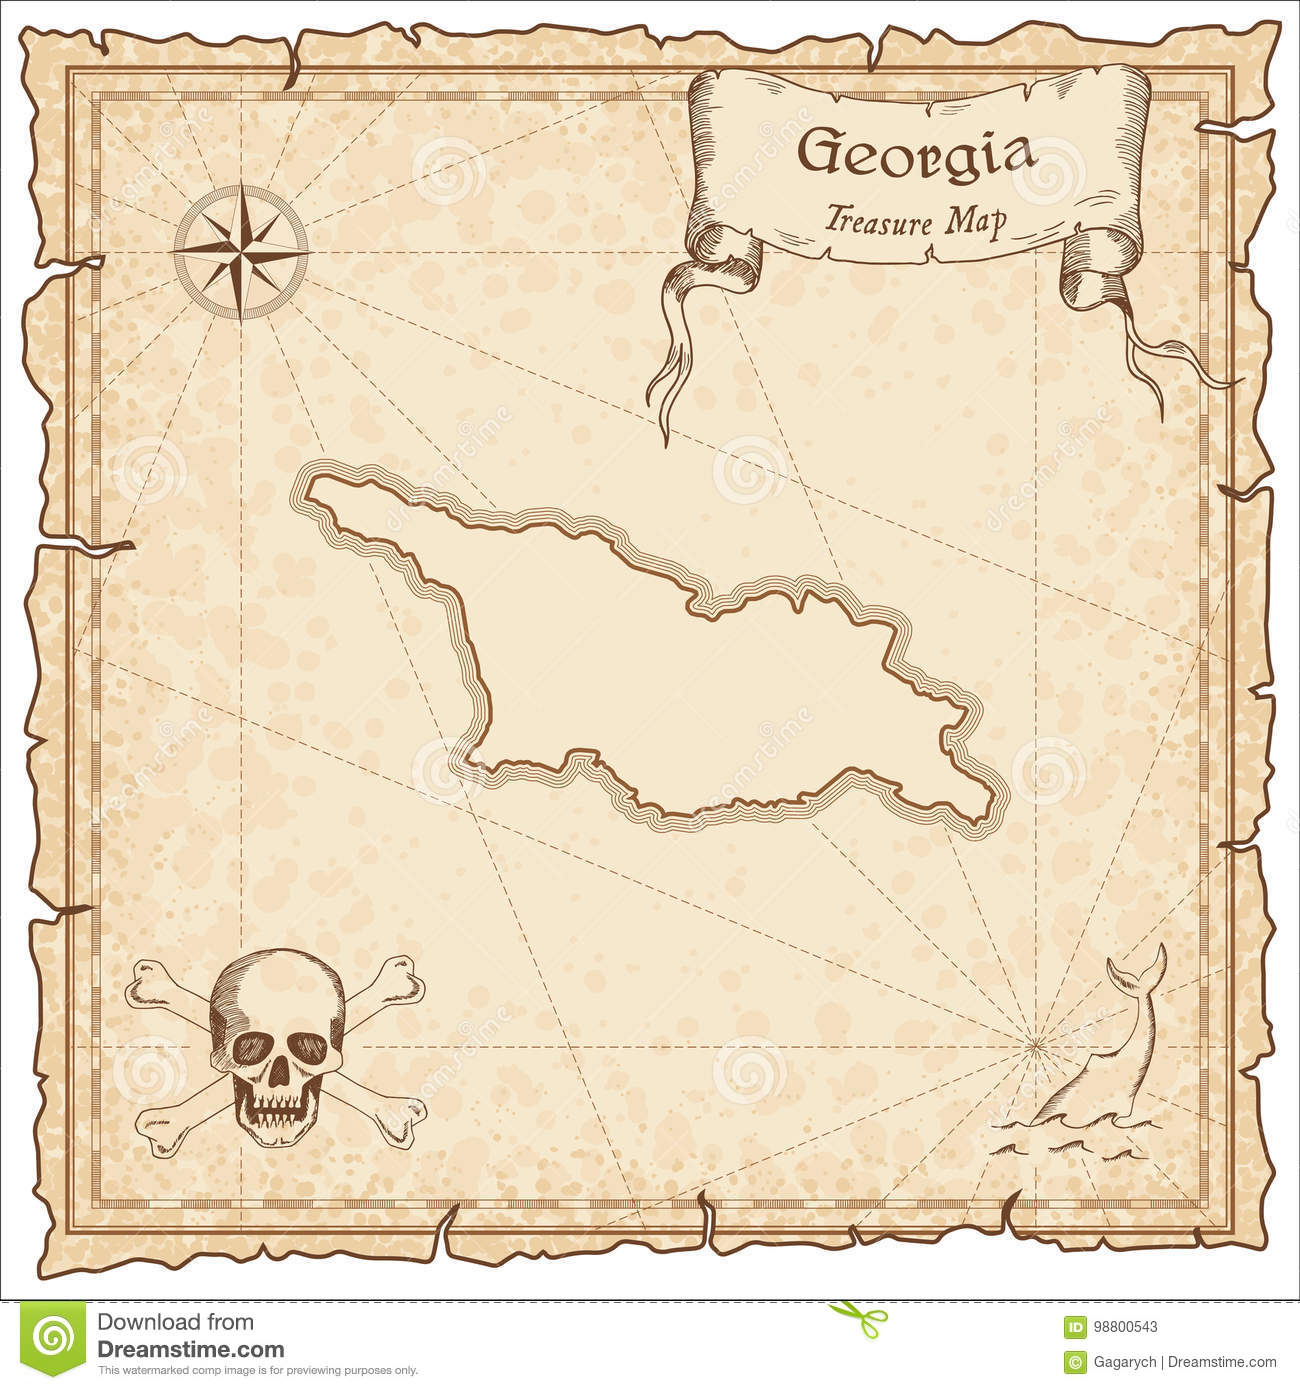 Georgia Old Pirate Map Stock Vector Illustration Of Illustration